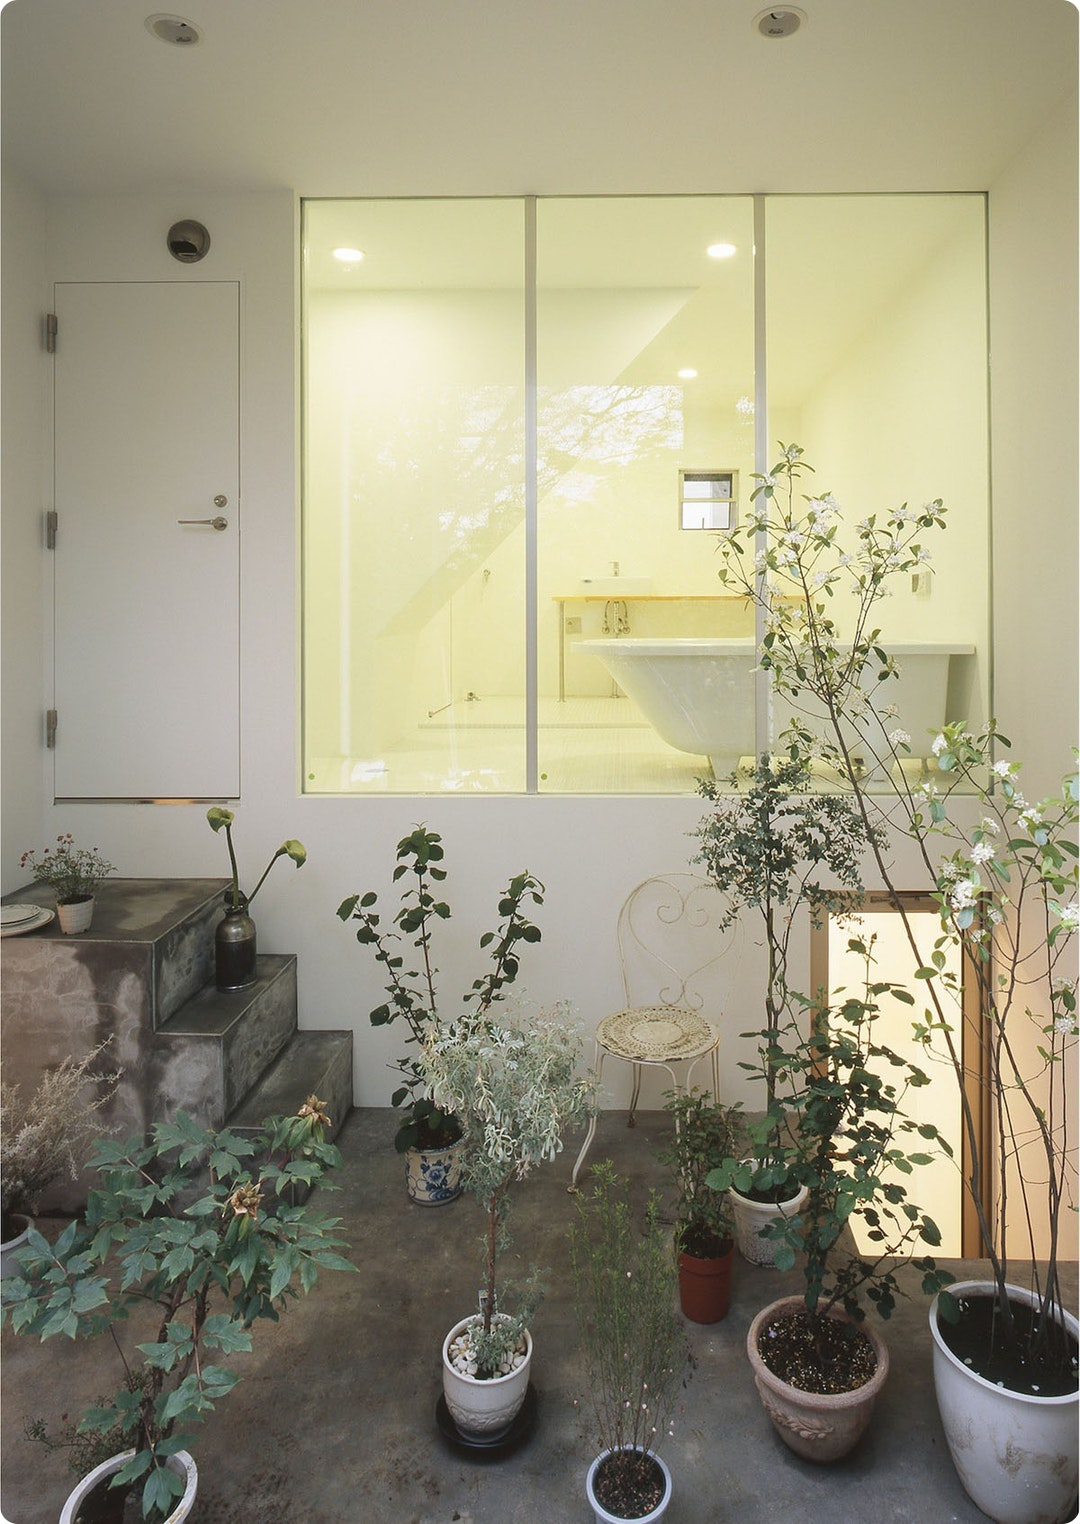 House with Gardens by Tetsuo Kondo Architects